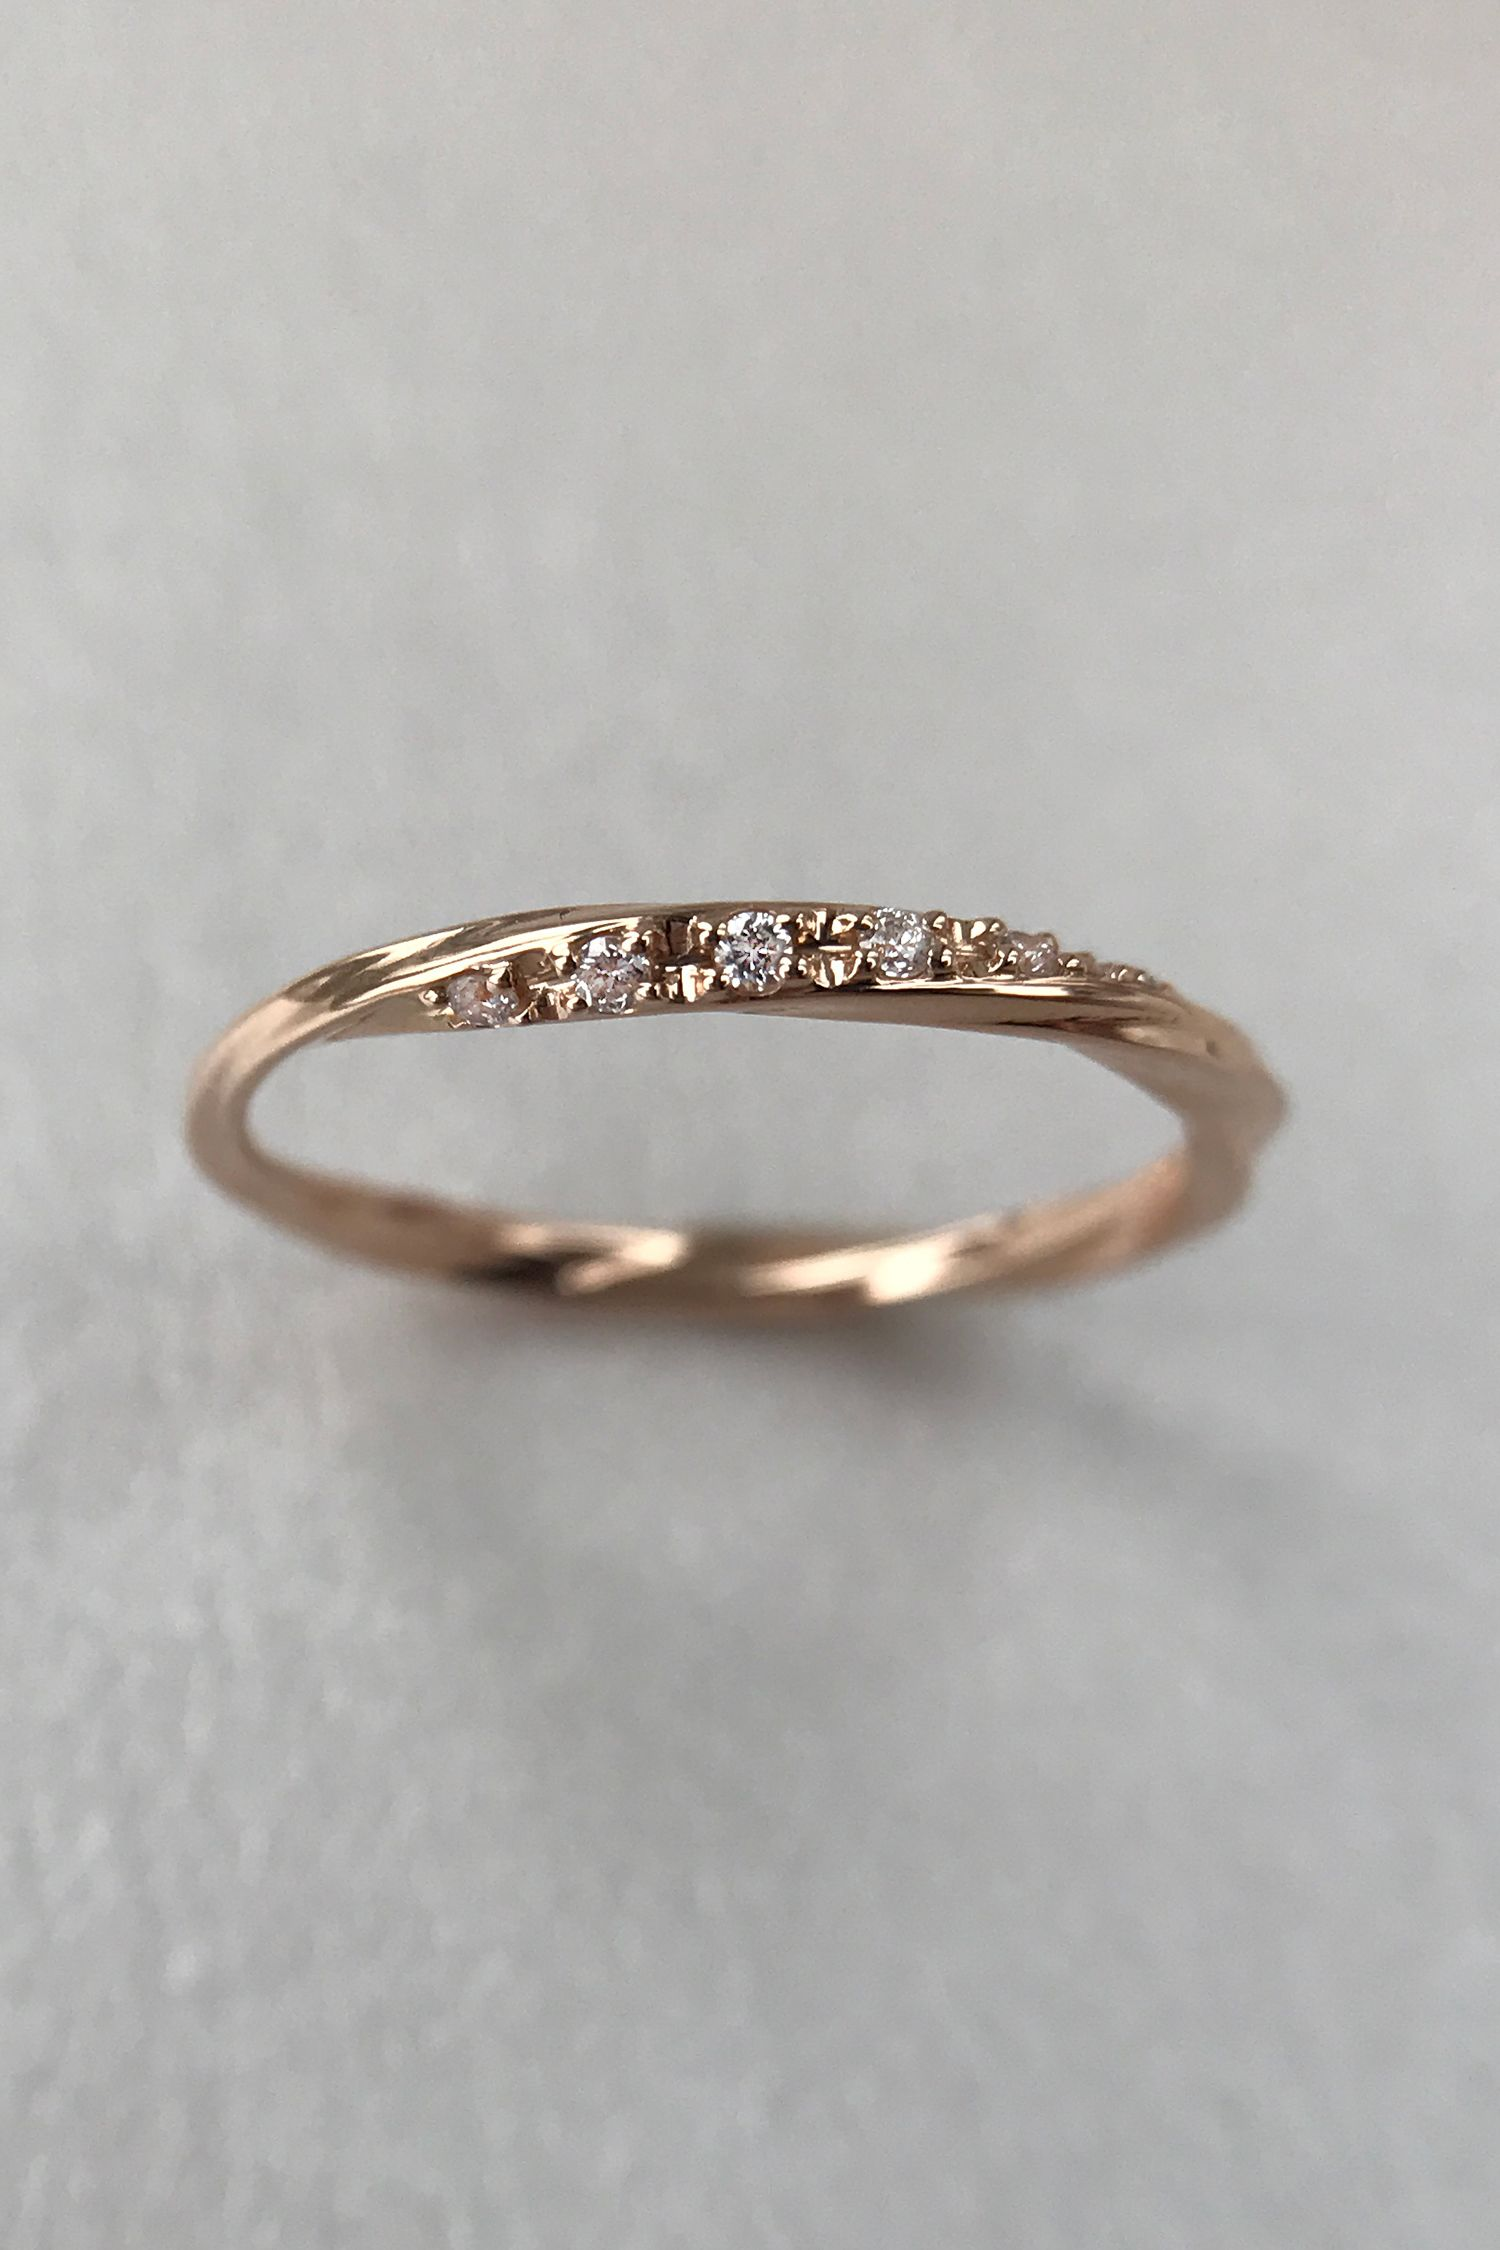 Wedding Band Women Unique Diamond Eternity Curved Wedding Band